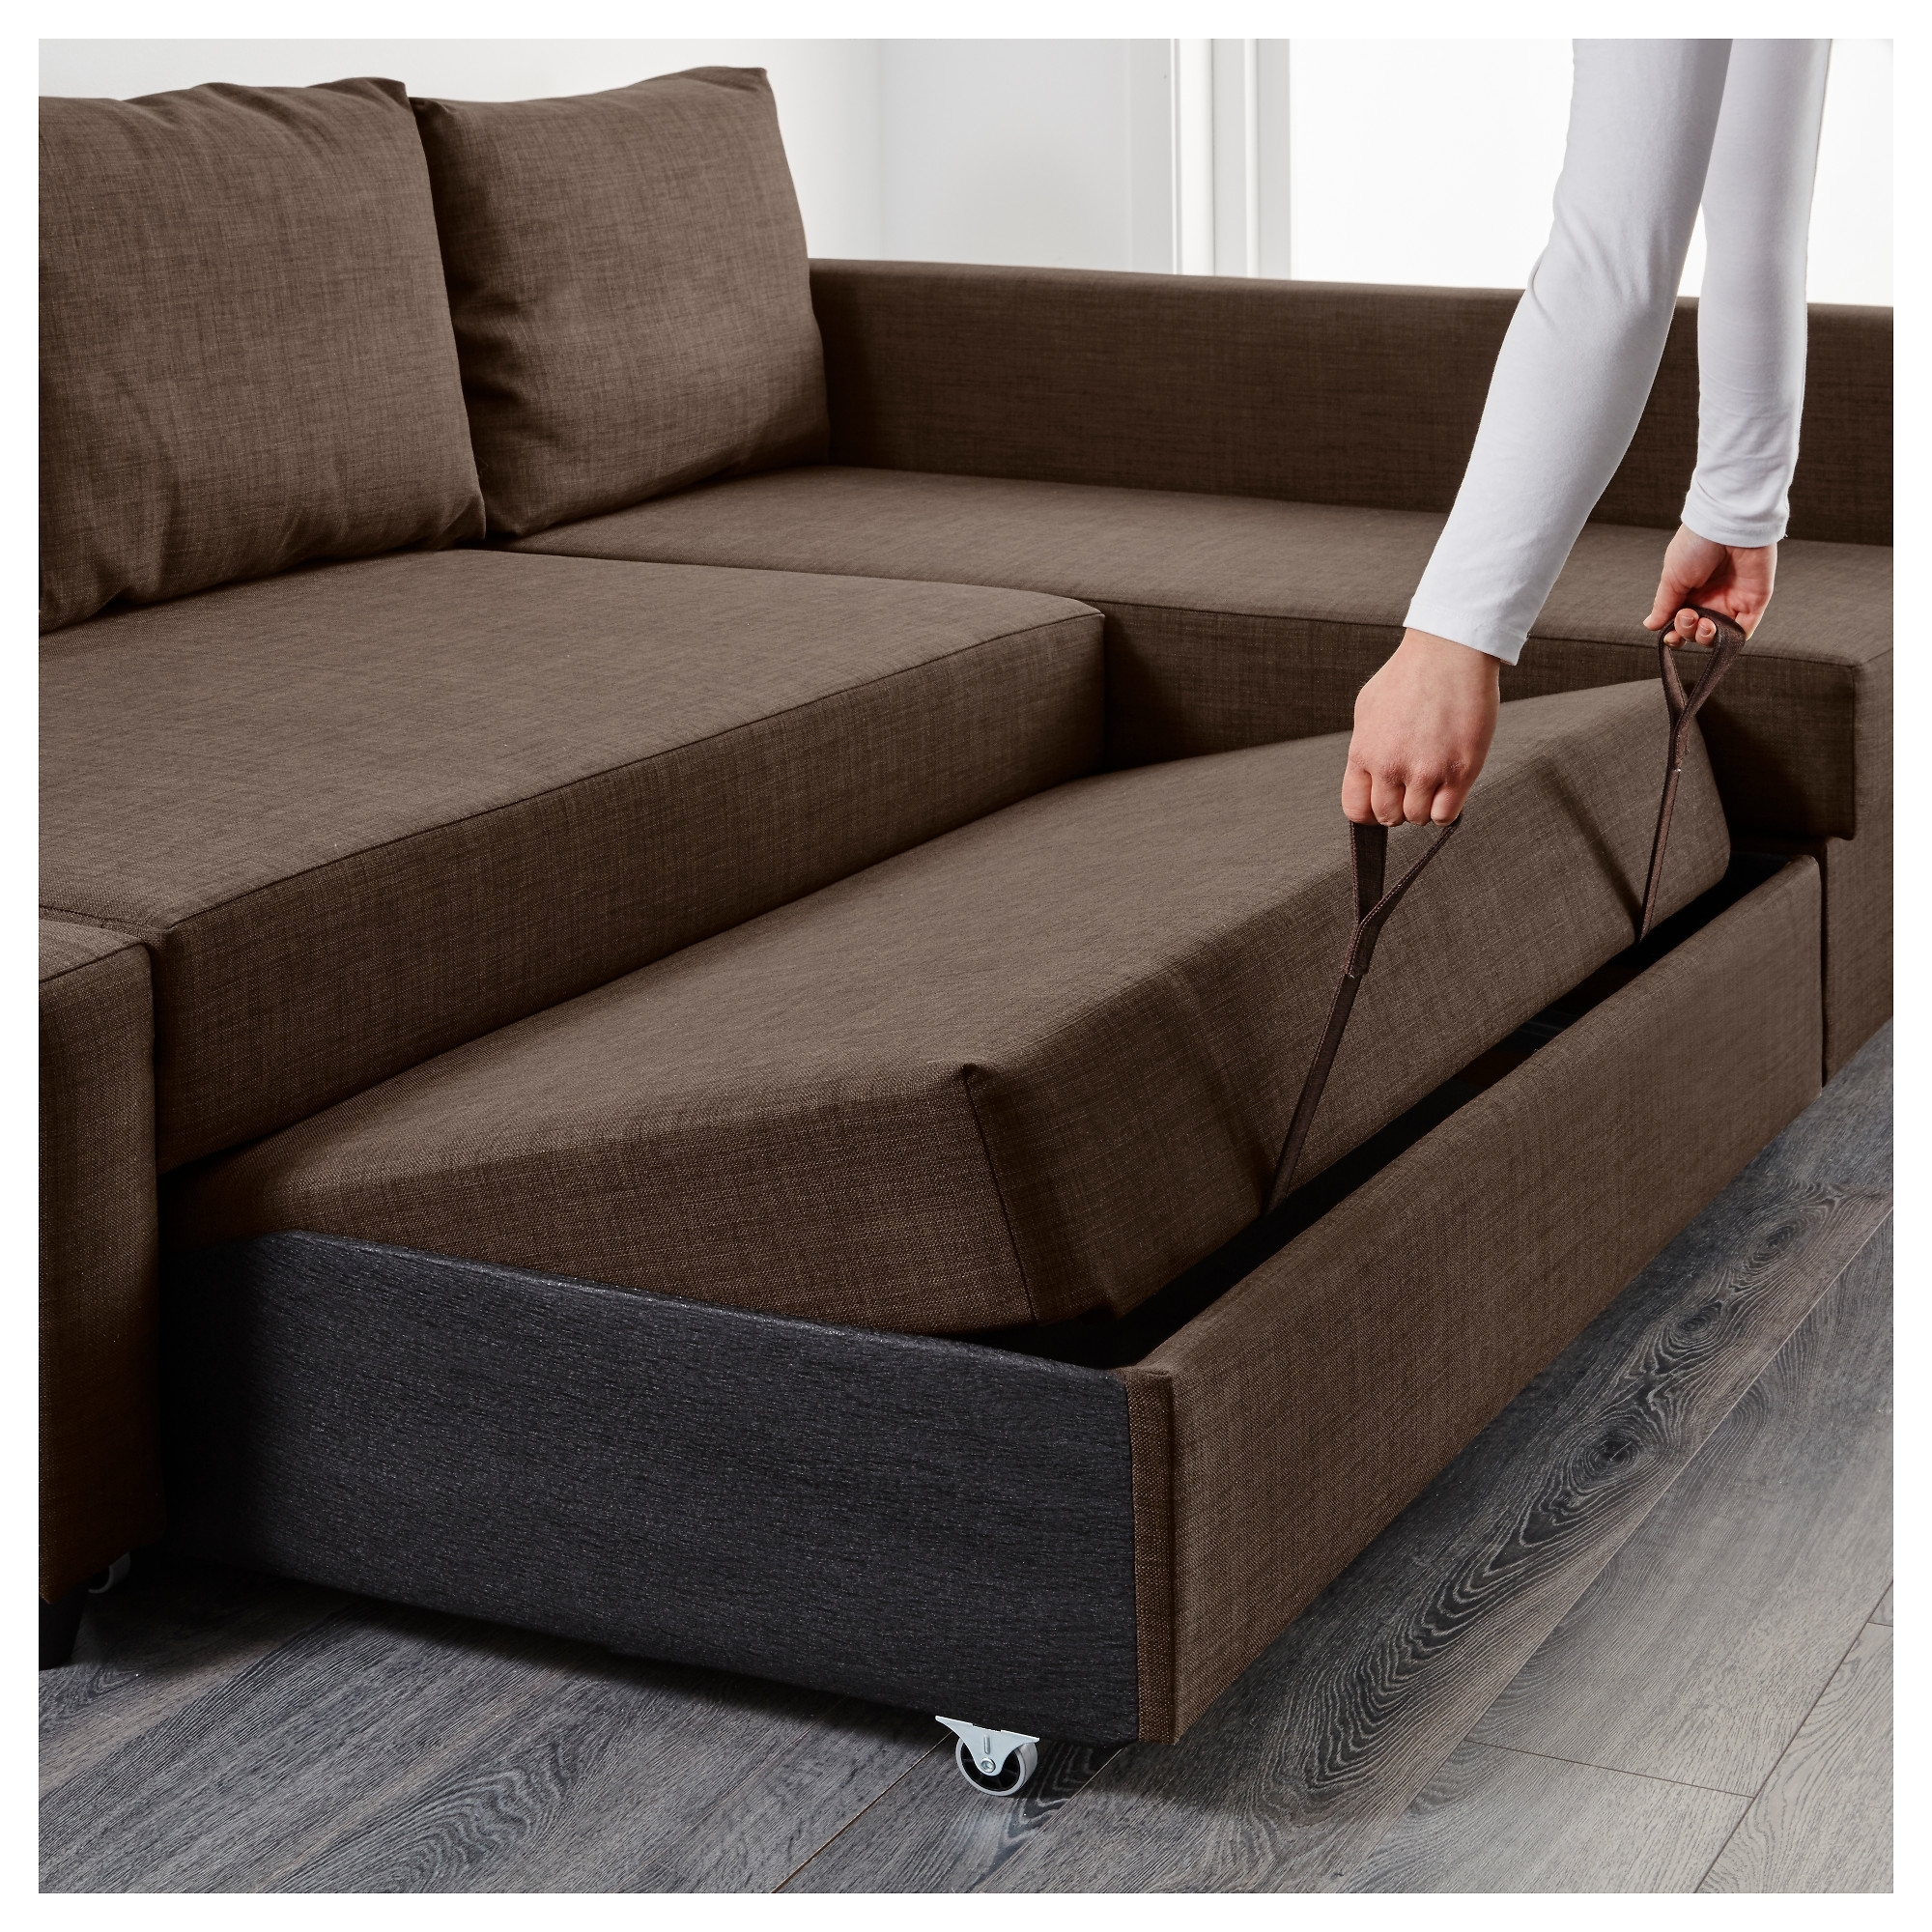 2018 Sleeper Sofas With Chaise And Storage With Regard To Friheten Sleeper Sectional,3 Seat W/storage – Skiftebo Dark Gray (View 6 of 15)